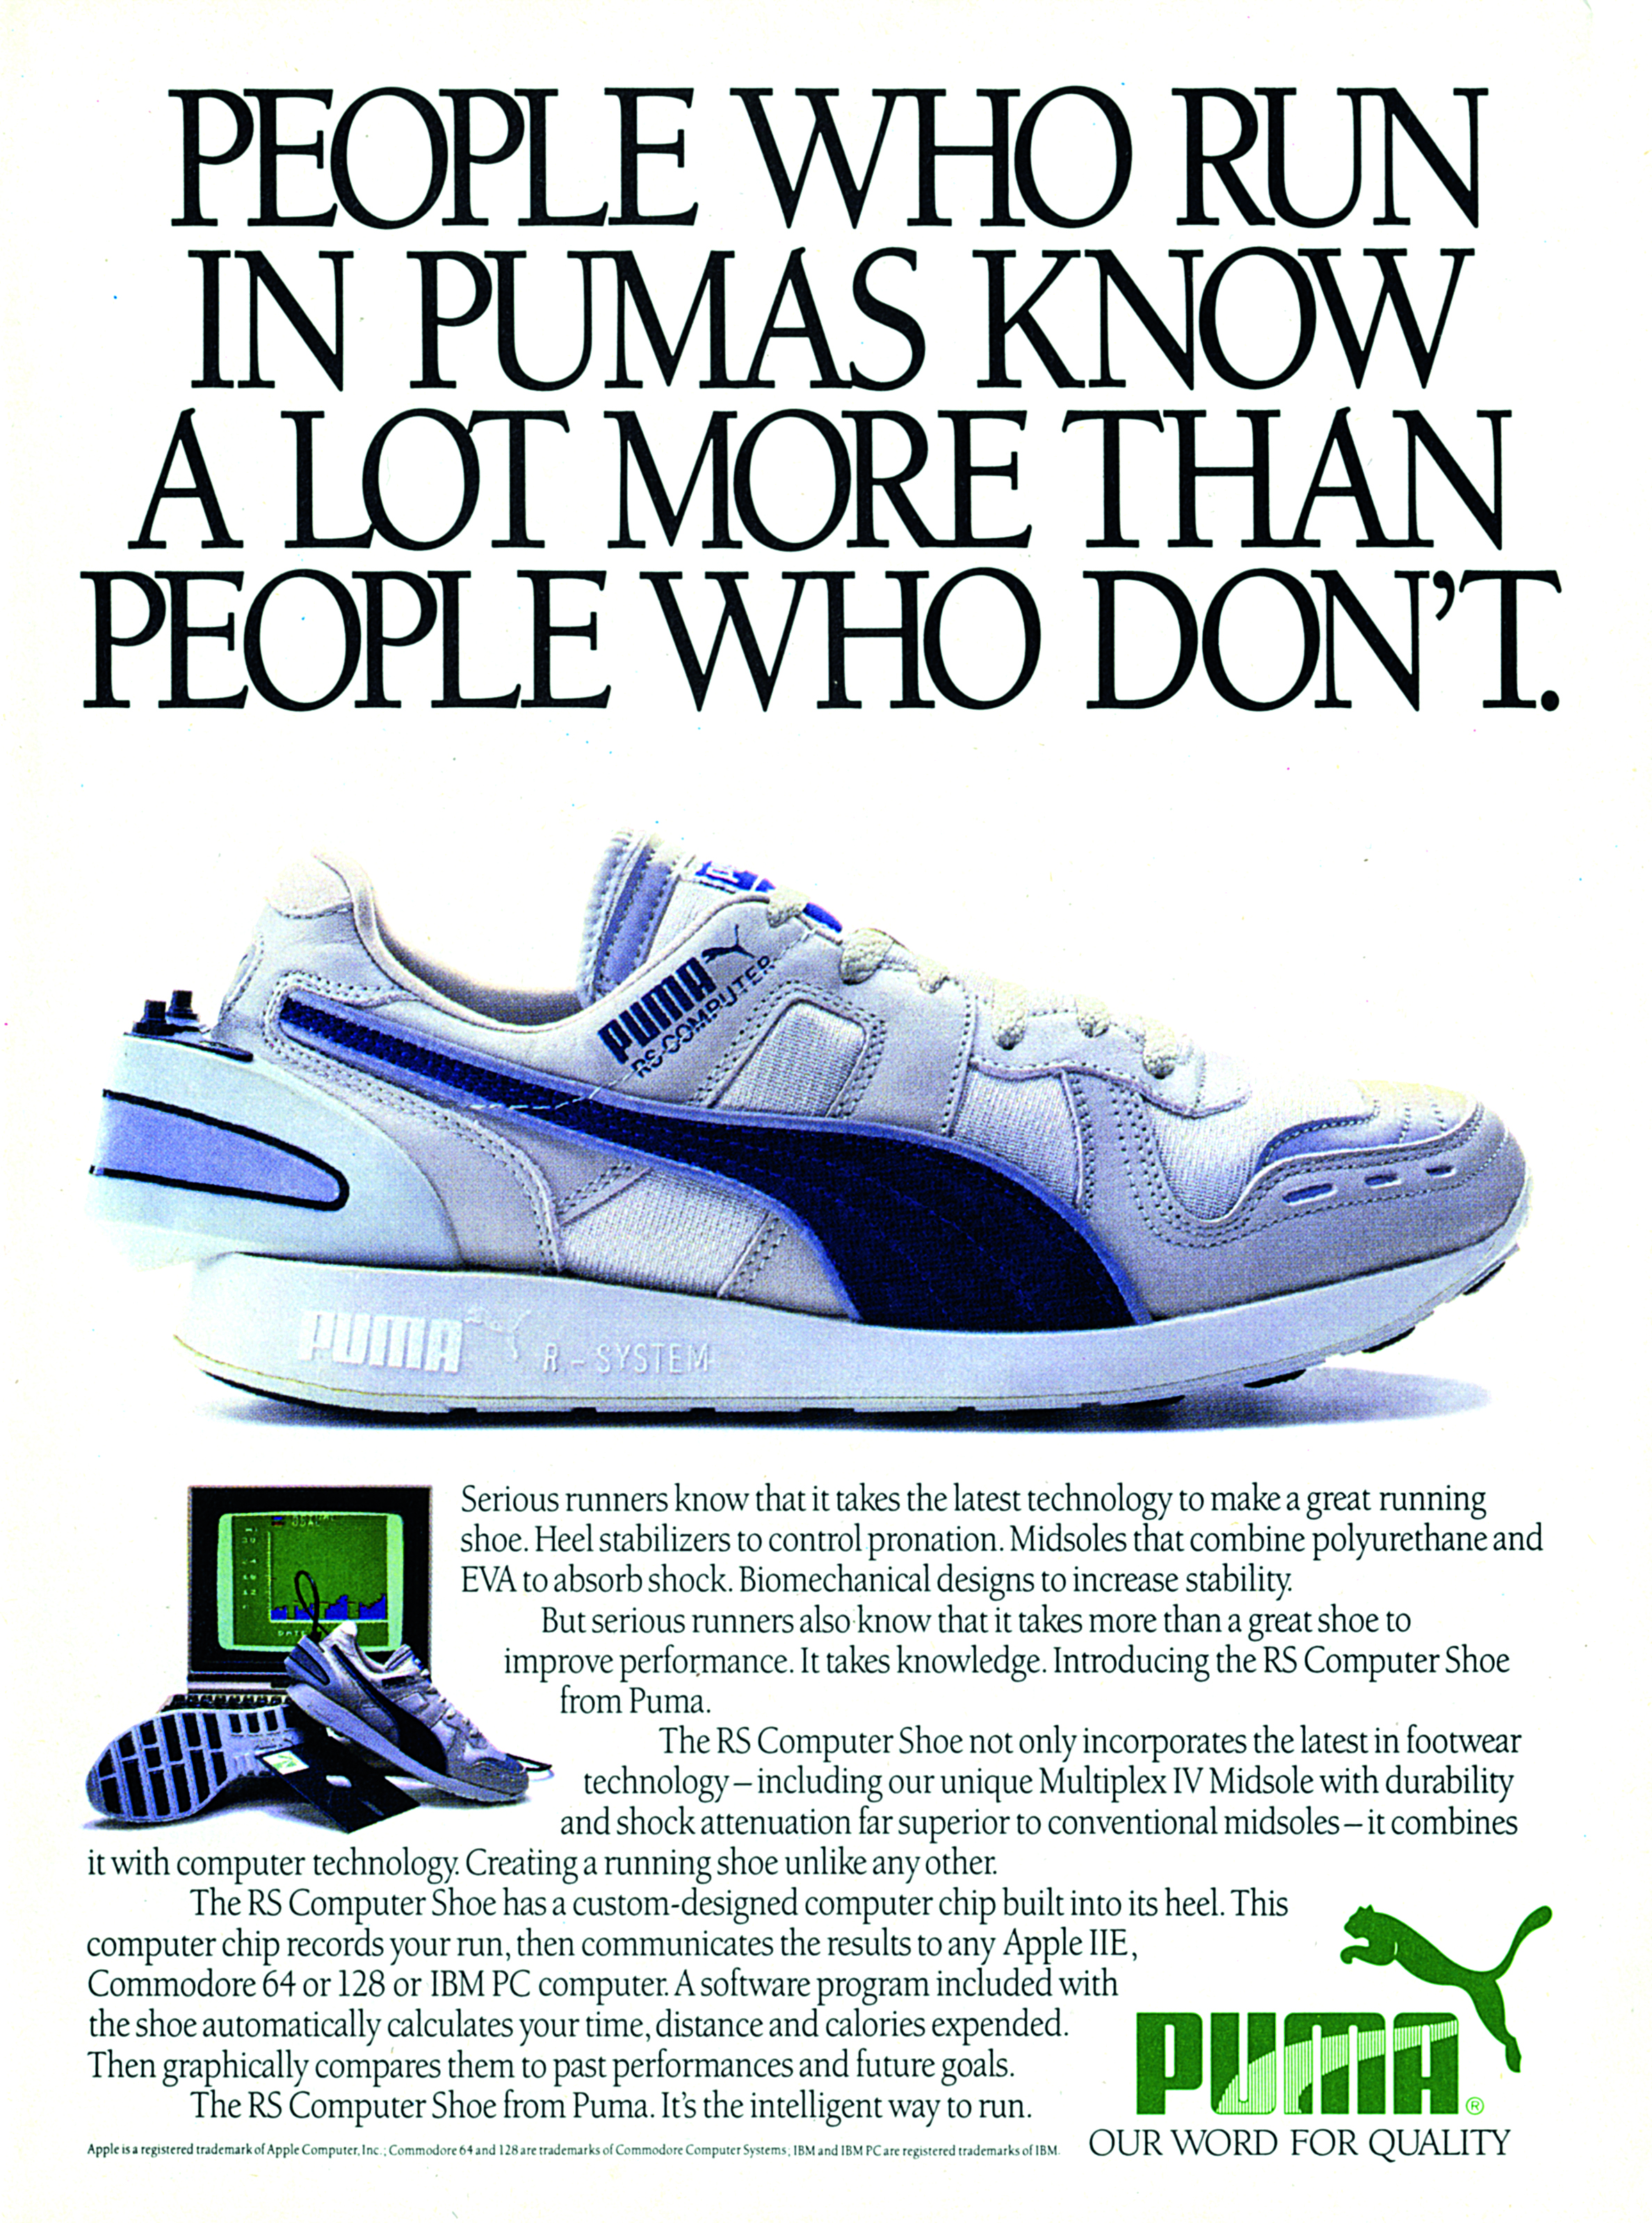 49d9dbe829722b and certainly a revolutionary drop from PUMA. The original RS Computer  could not only count your foot strikes but tell you the amount of time run